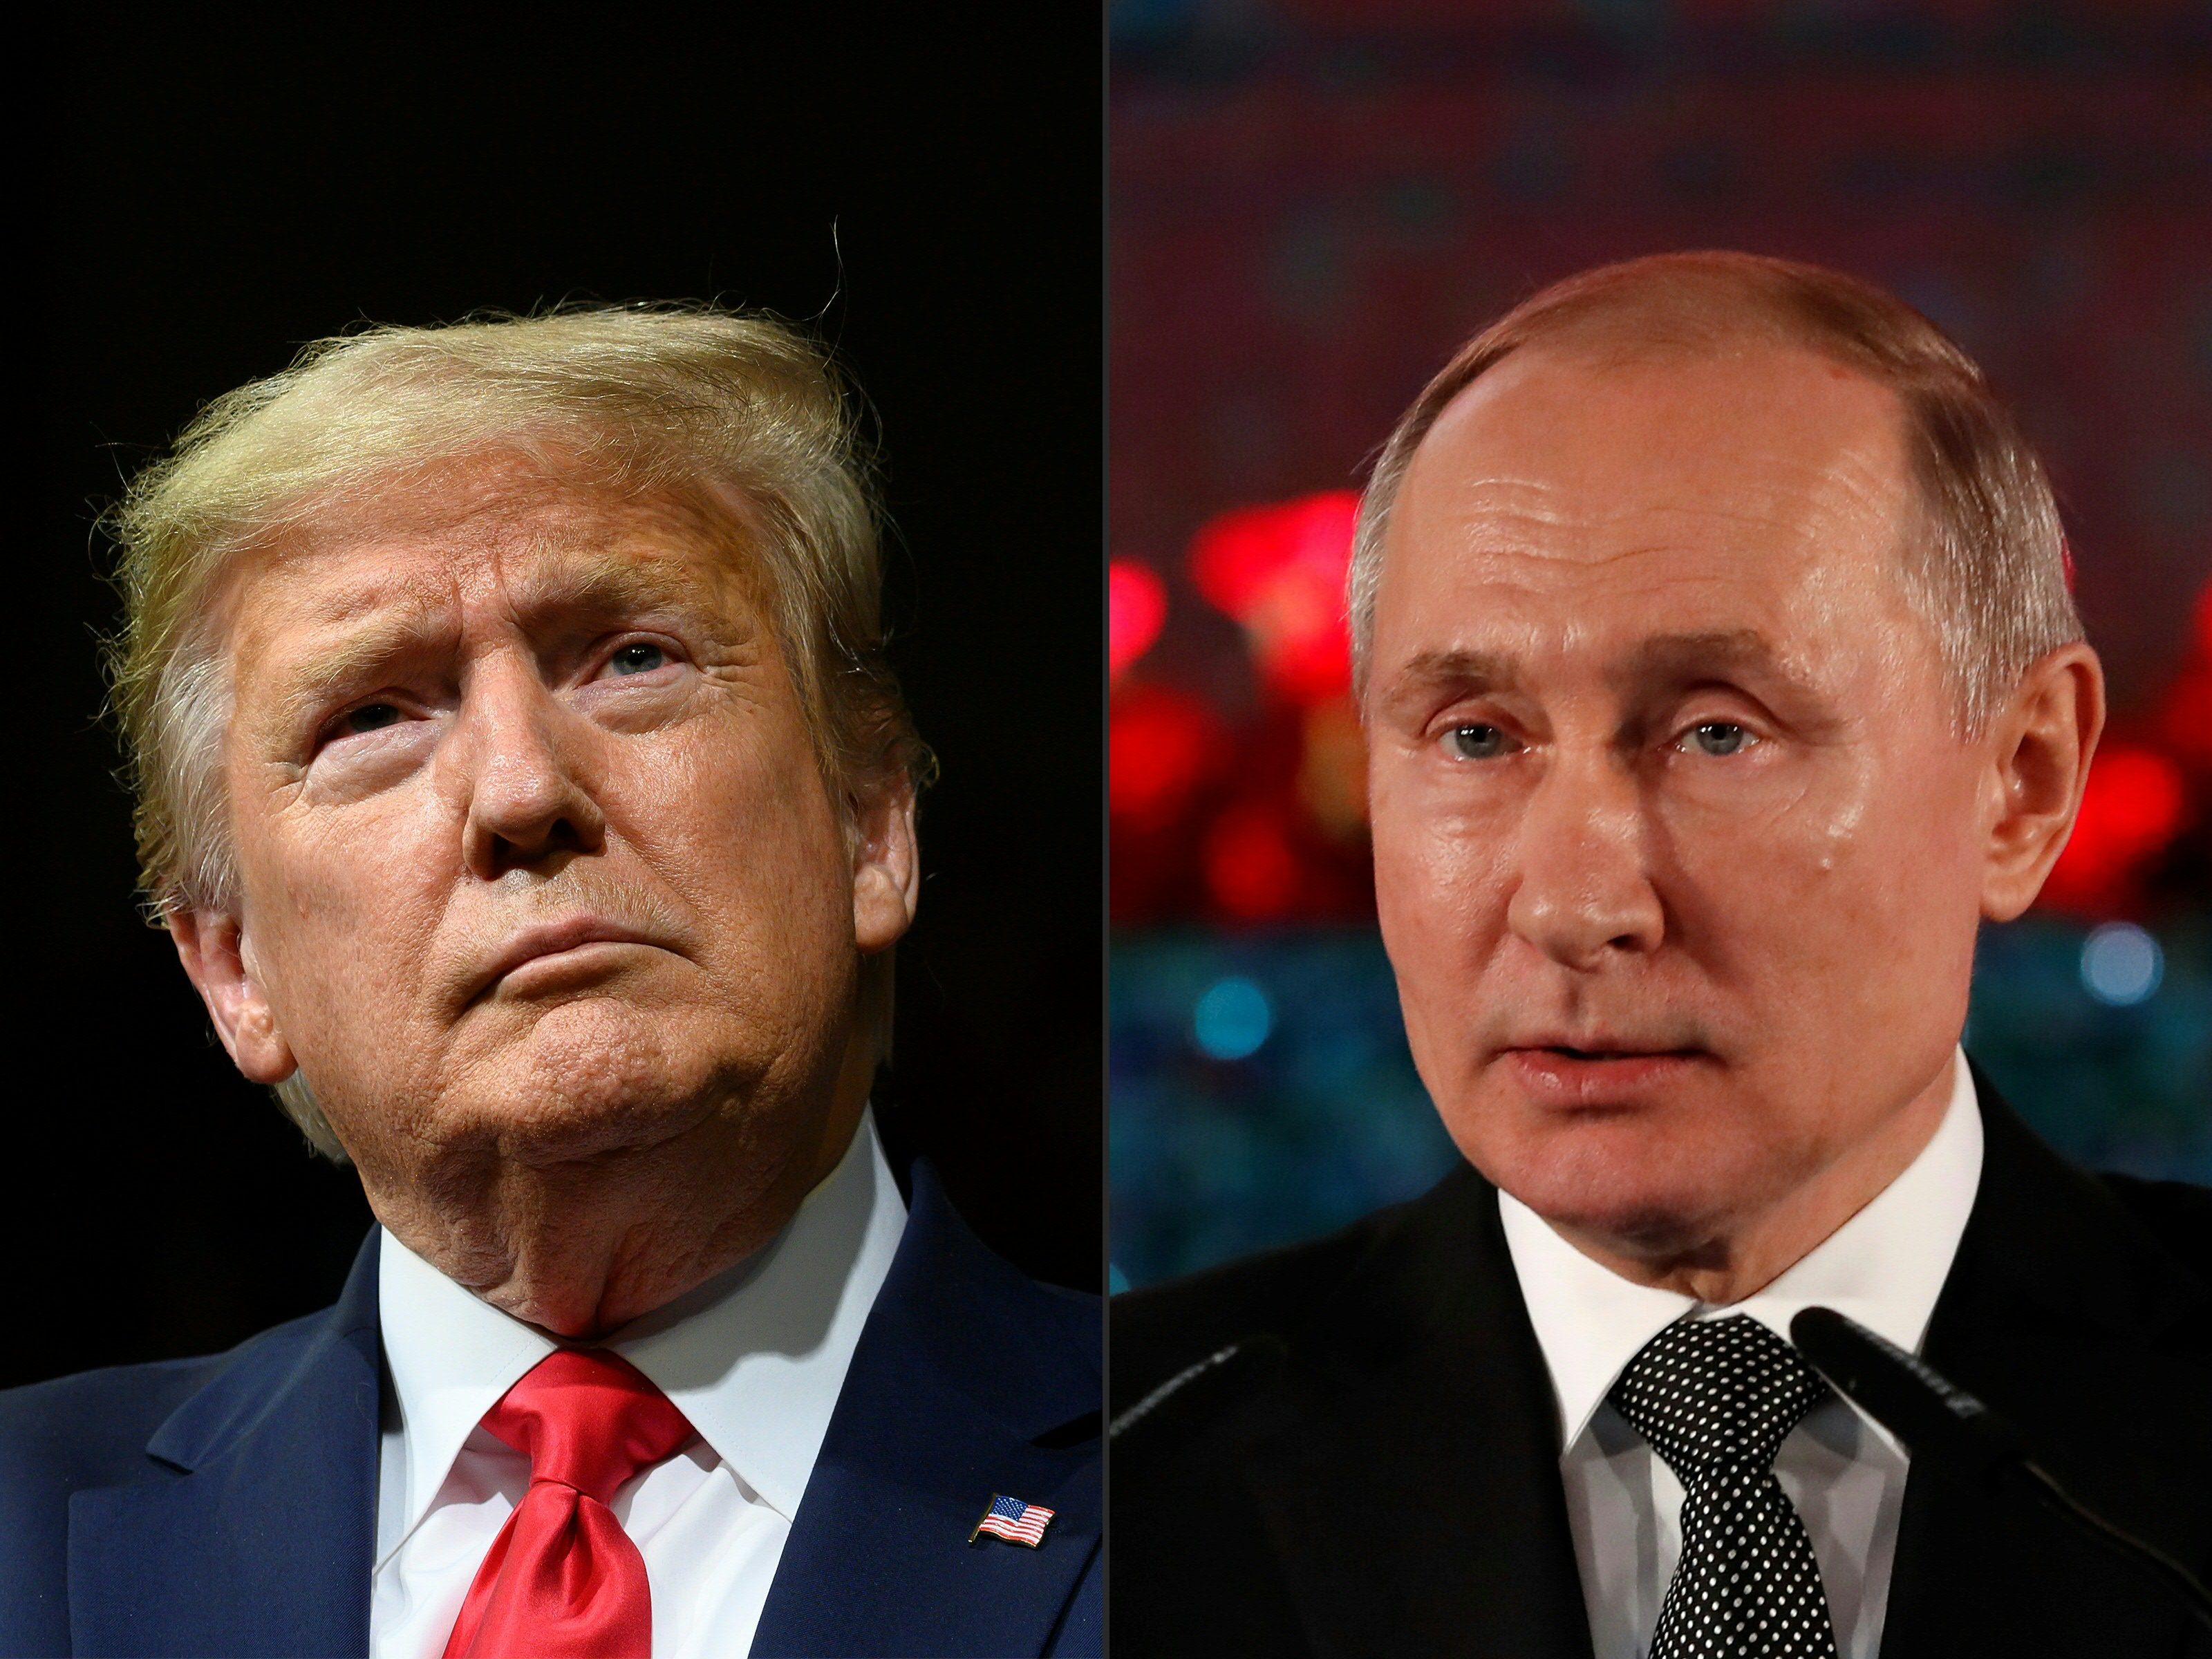 President Donald J. Trump, at a rally in Phoenix, Ariz., on Feb. 19, and Russian President Vladimir Putin, delivering a speech in Jerusalem on Jan. 23. Talks in Geneva on Oct. 2, 2020 involving U.S. and Russian security officials covered Kremlin election meddling, suggesting a shift in Russian tactics in the run-up to the U.S. vote.